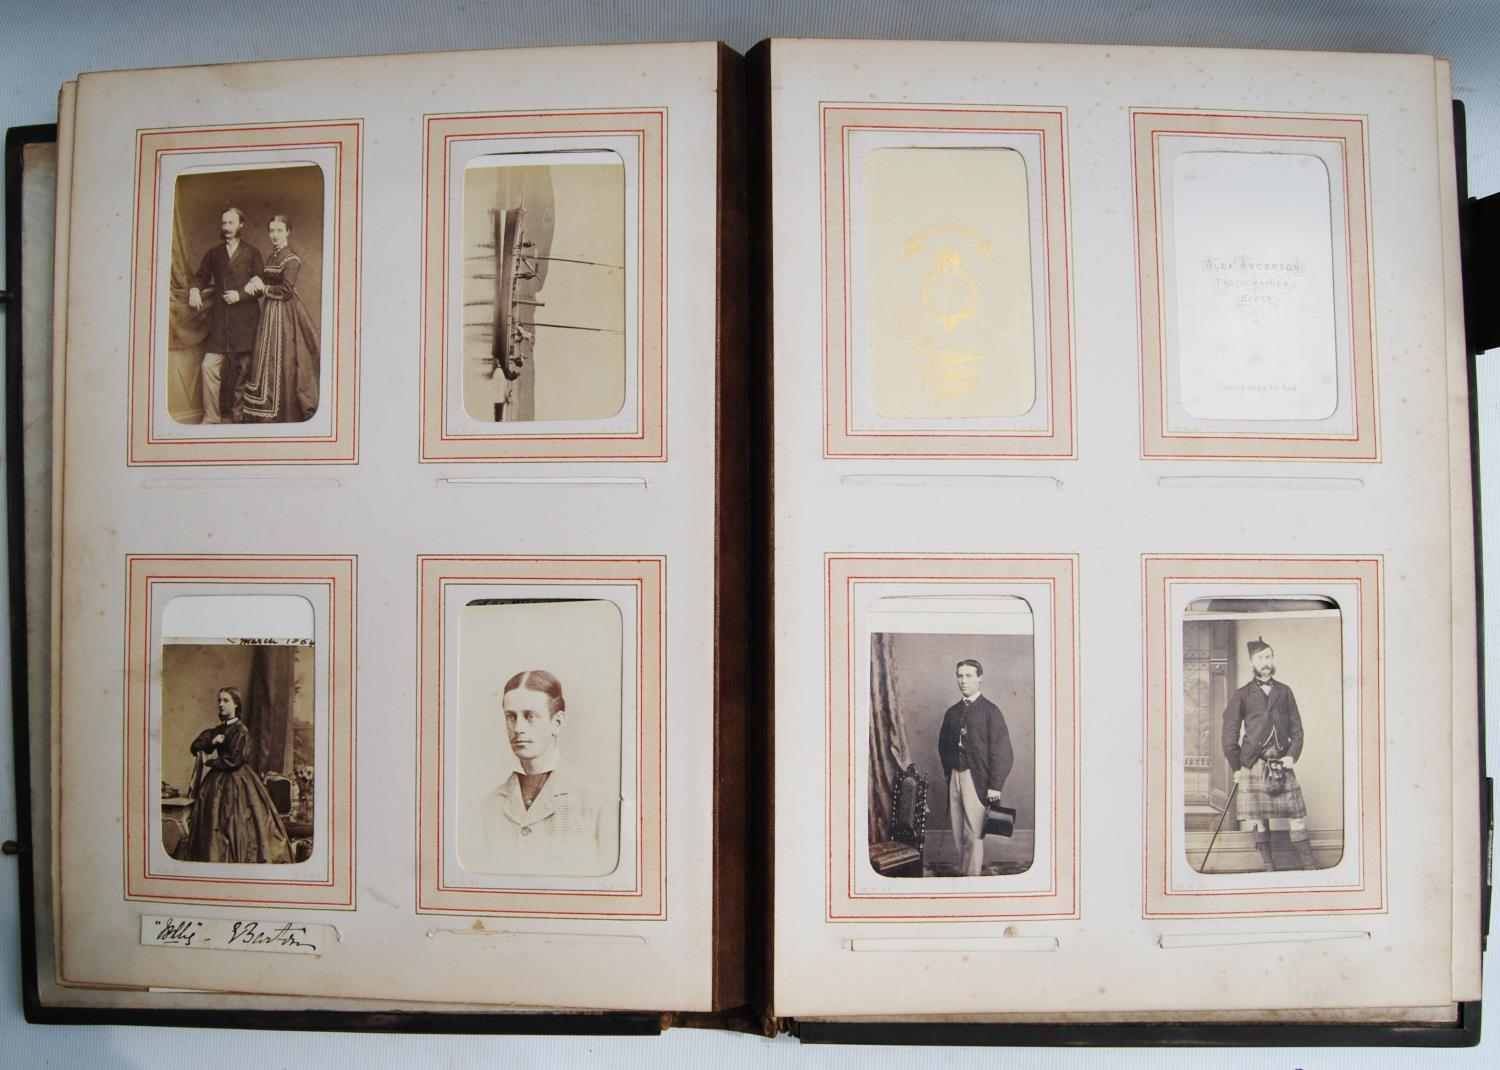 Victorian photograph album belong to Harden Burnley, signed 1870, comprising of royalty, officers - Image 5 of 10